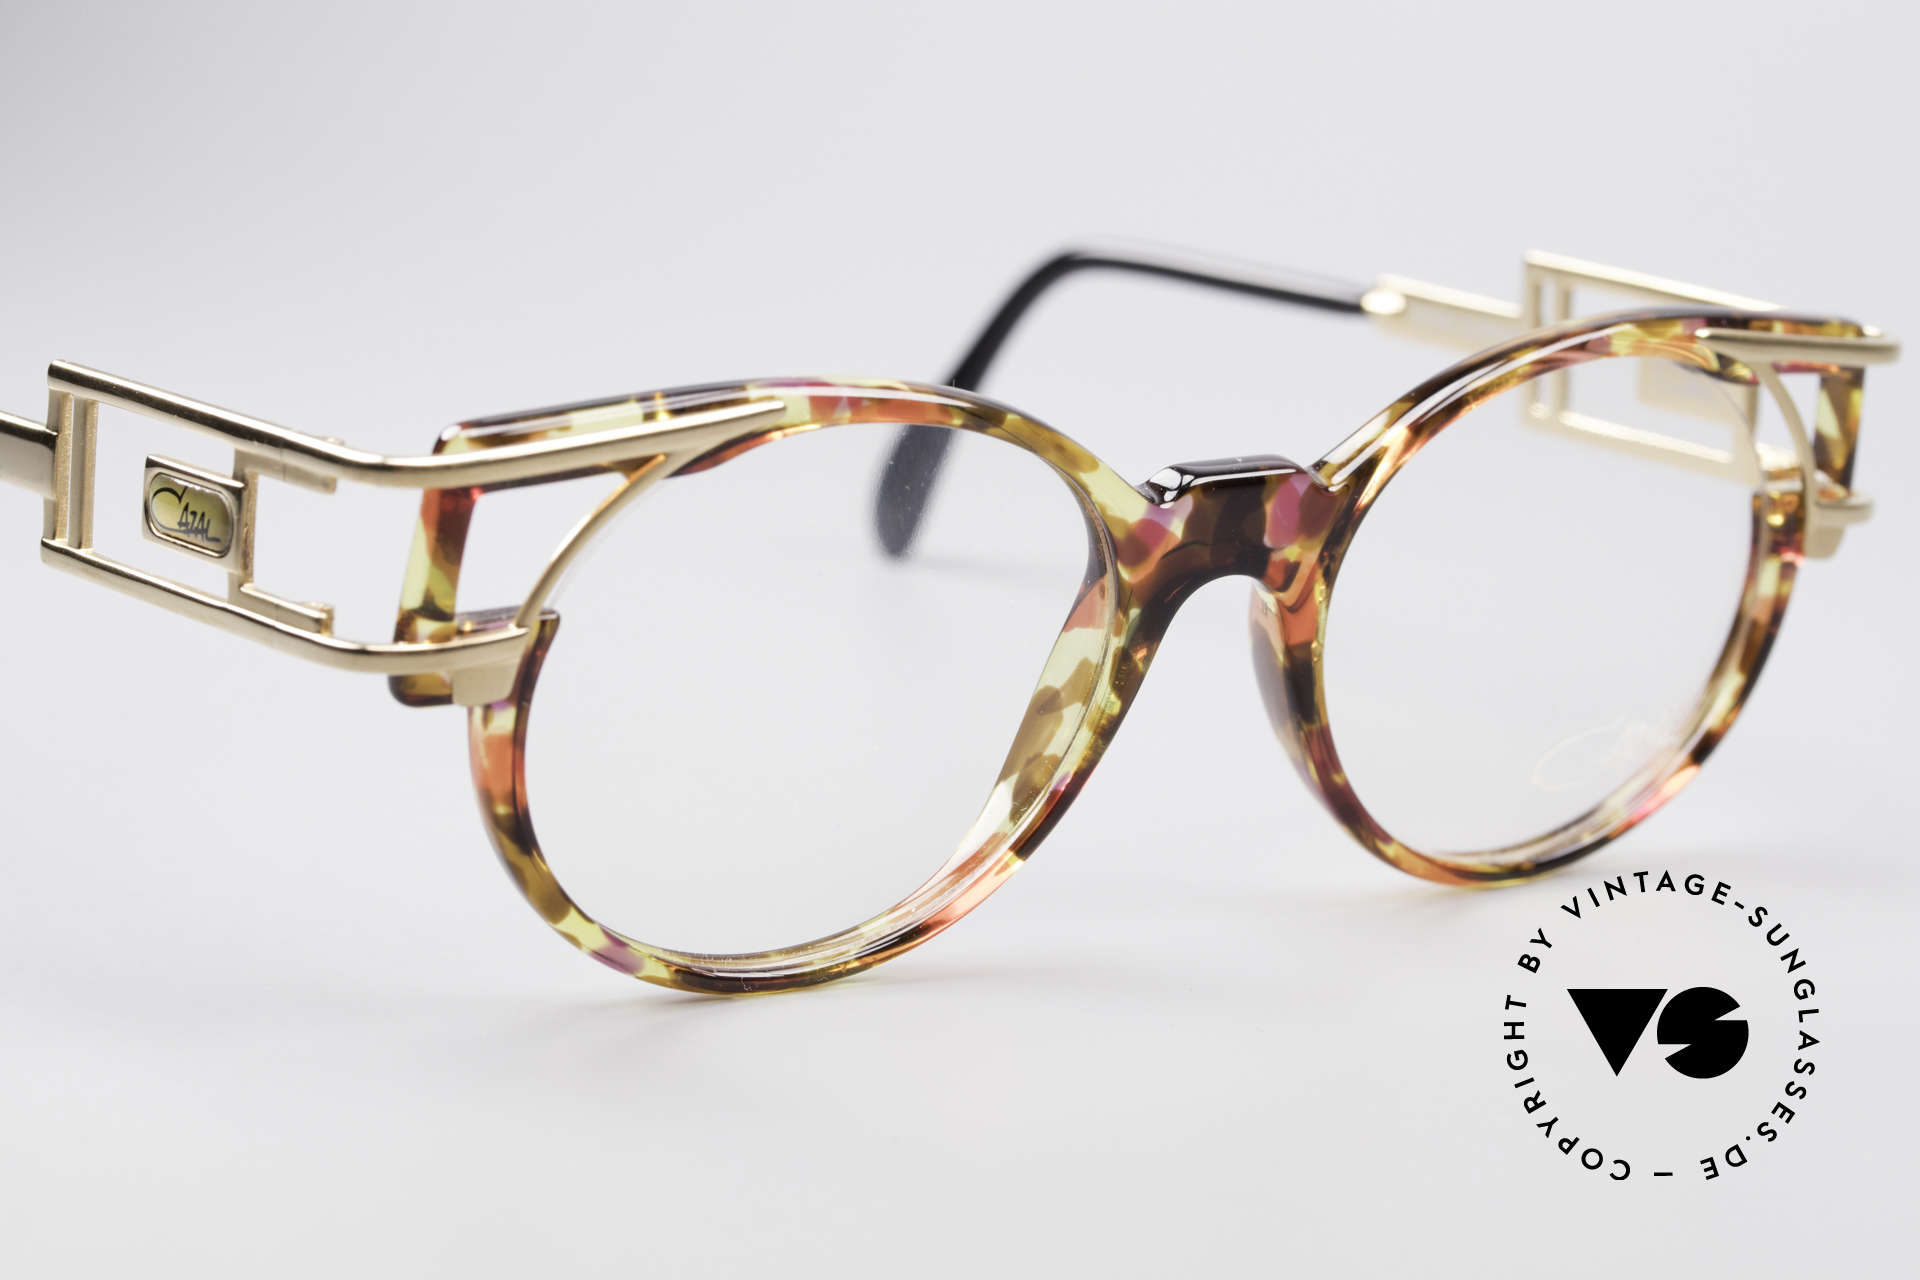 Cazal 353 Old School Hip Hop Eyeglasses, quality & paintwork = distinctive CAri ZALloni; CAZAL, Made for Men and Women